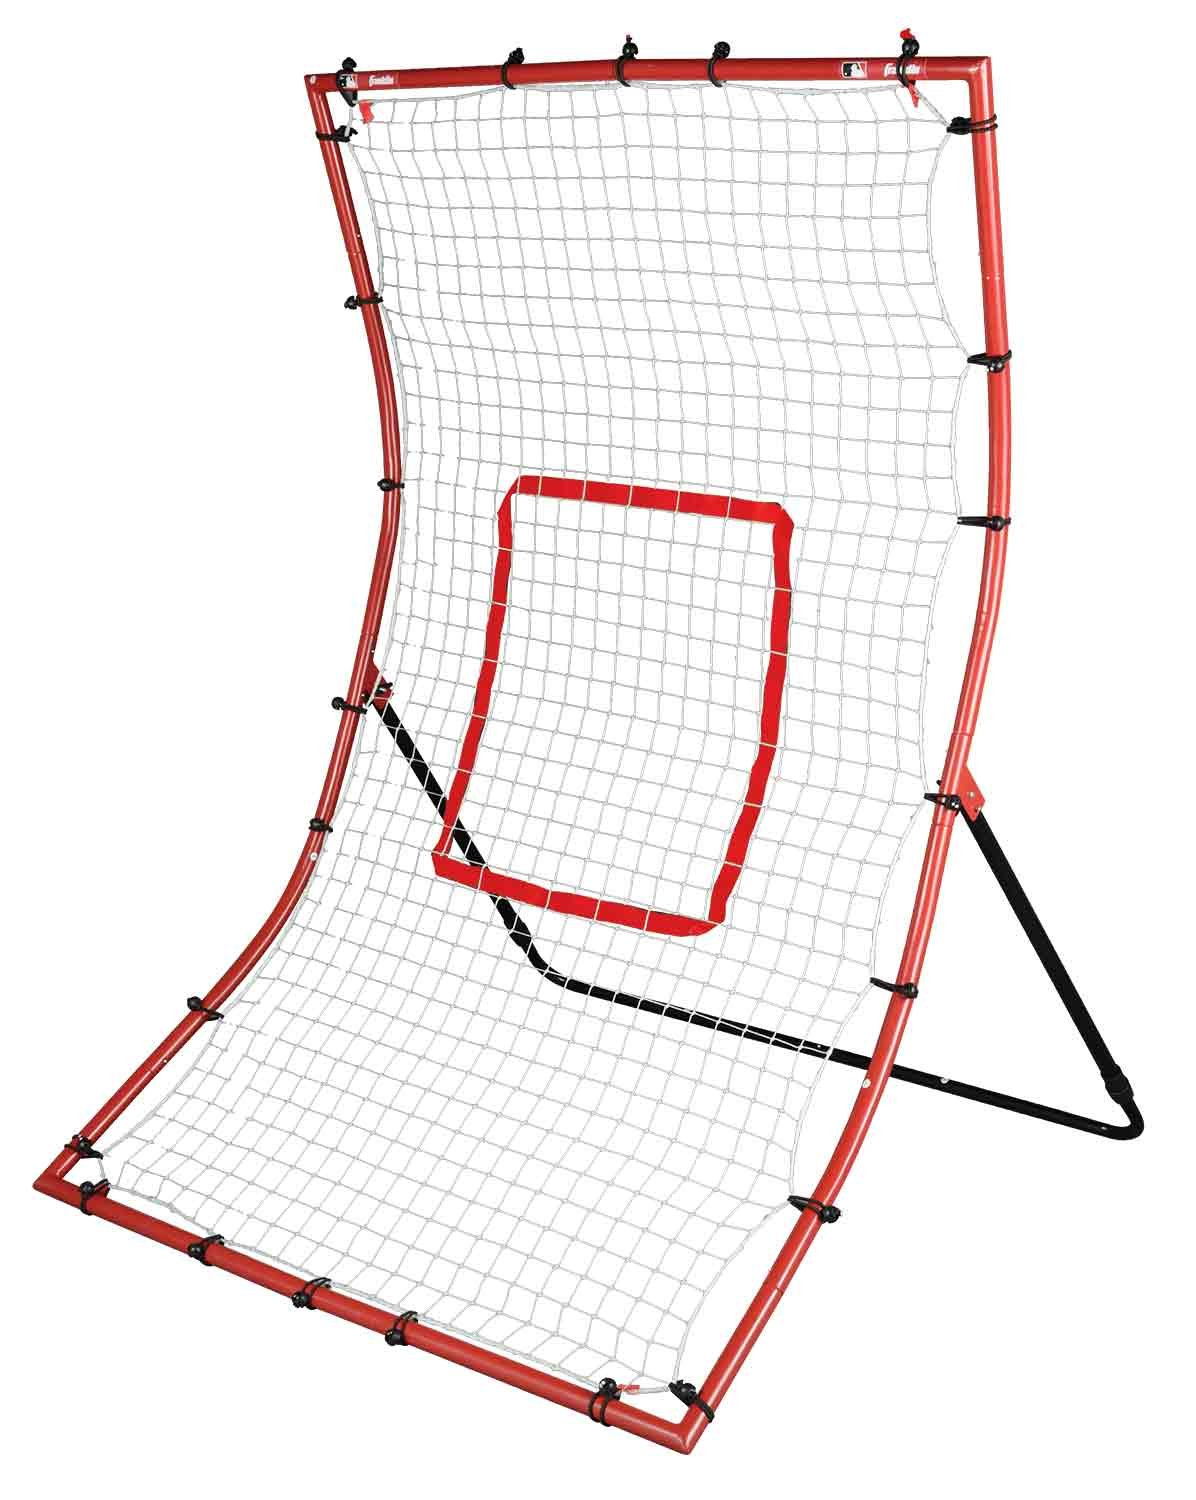 Franklin Sports MLB 2-in-1 Switch-Hitter Flyback Return Trainer, 68'' x 44'' by Franklin Sports